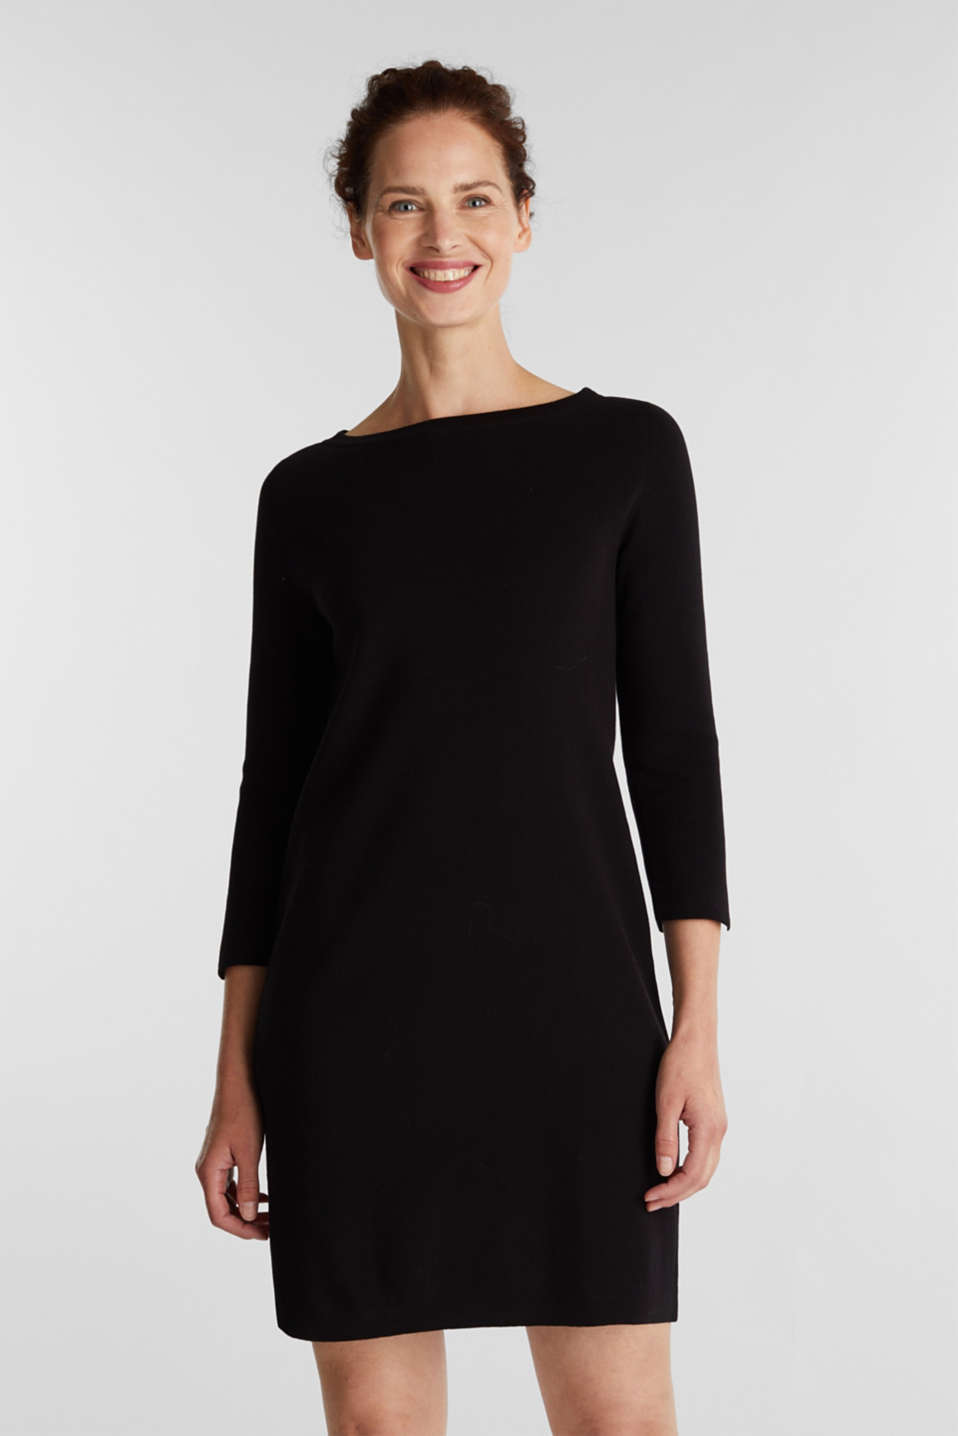 Esprit - Knit dress made of 100% cotton